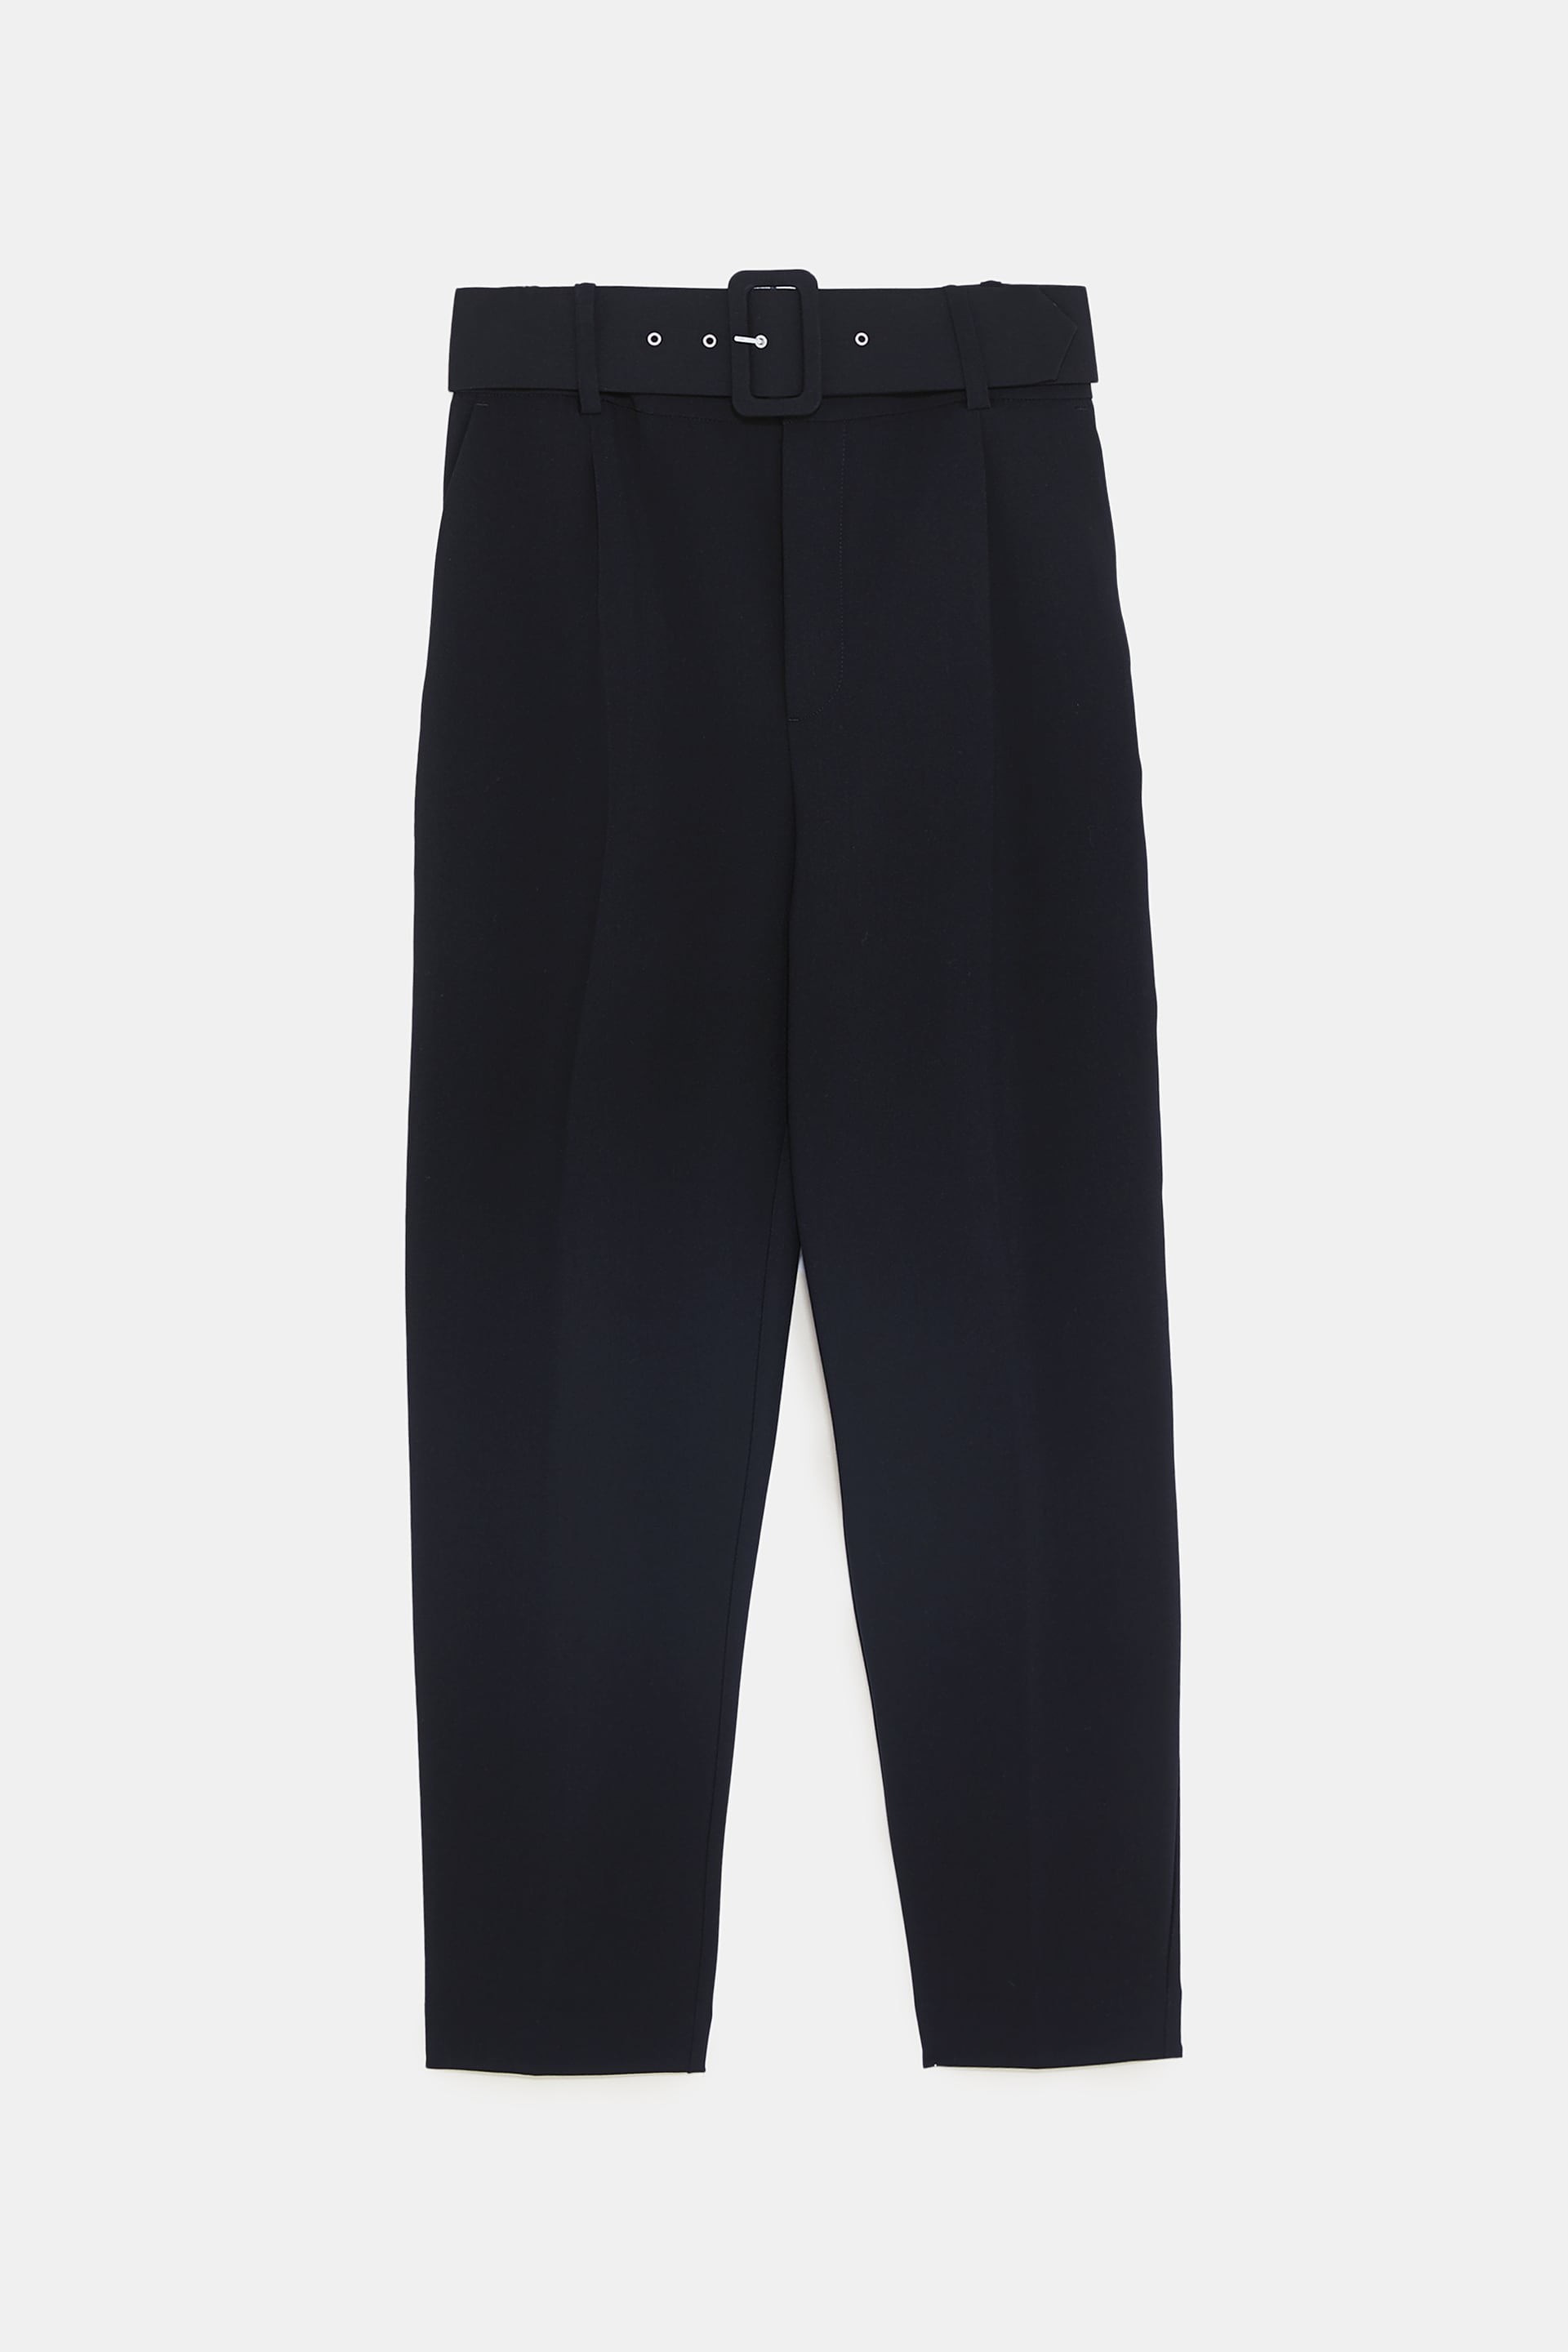 efb179c3 Zara + High-Waisted Belted Pants